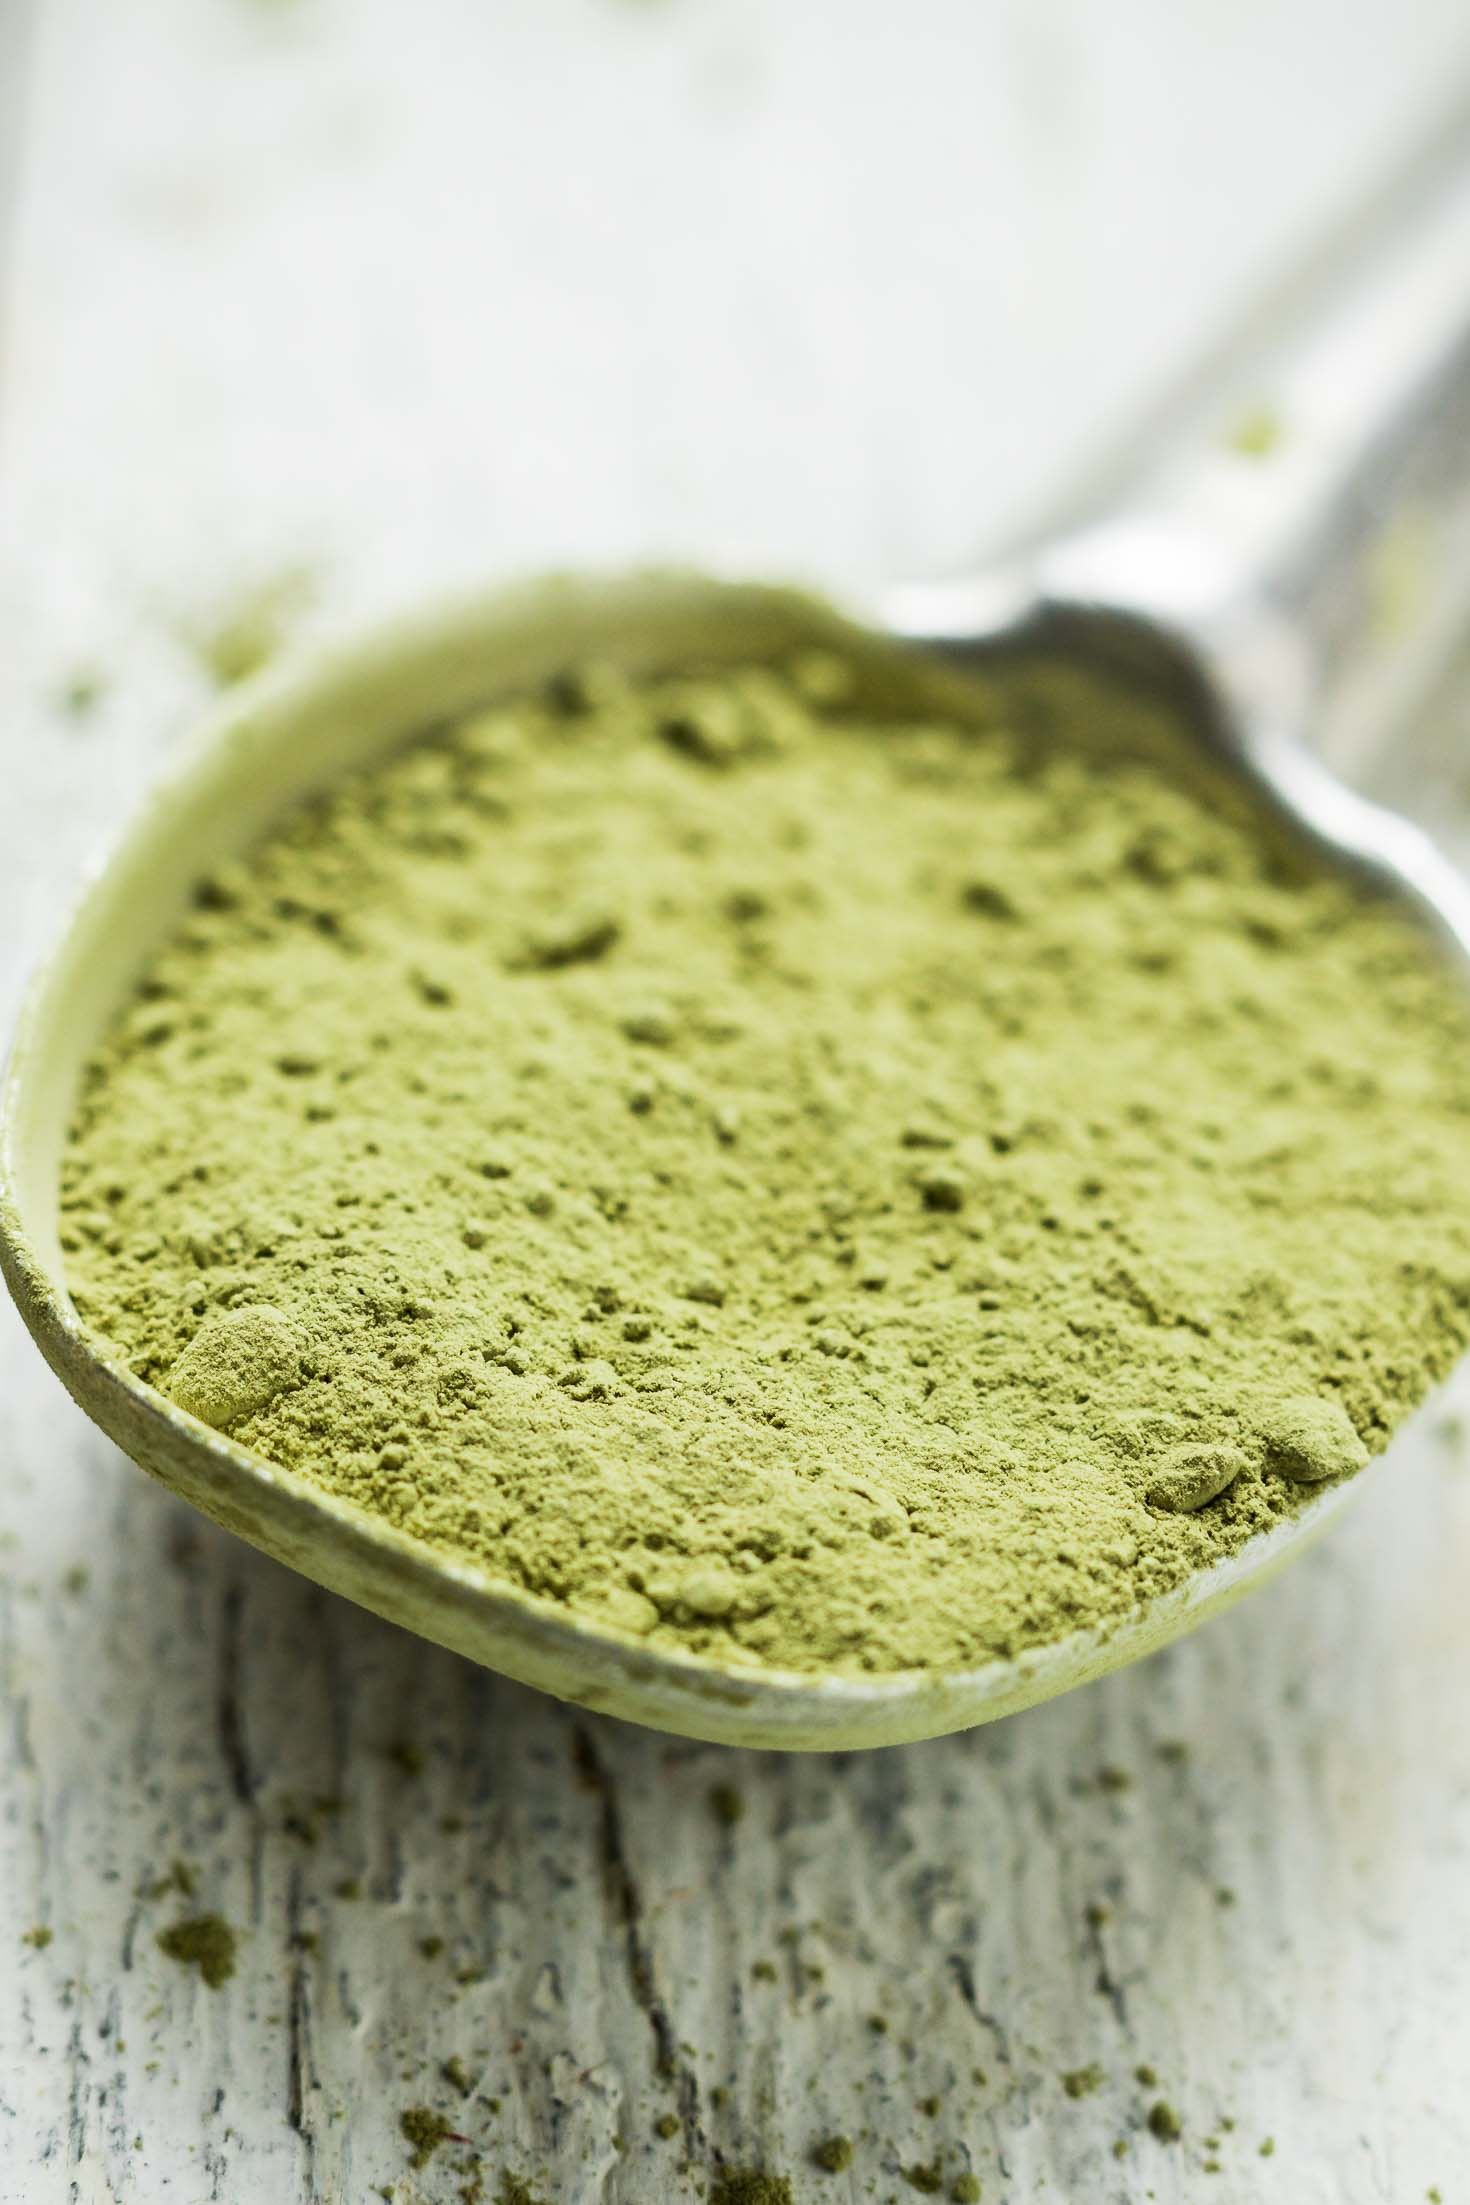 Green Kiwi Matcha Protein Smoothie-closeup view-matcha powder in a tablespoon